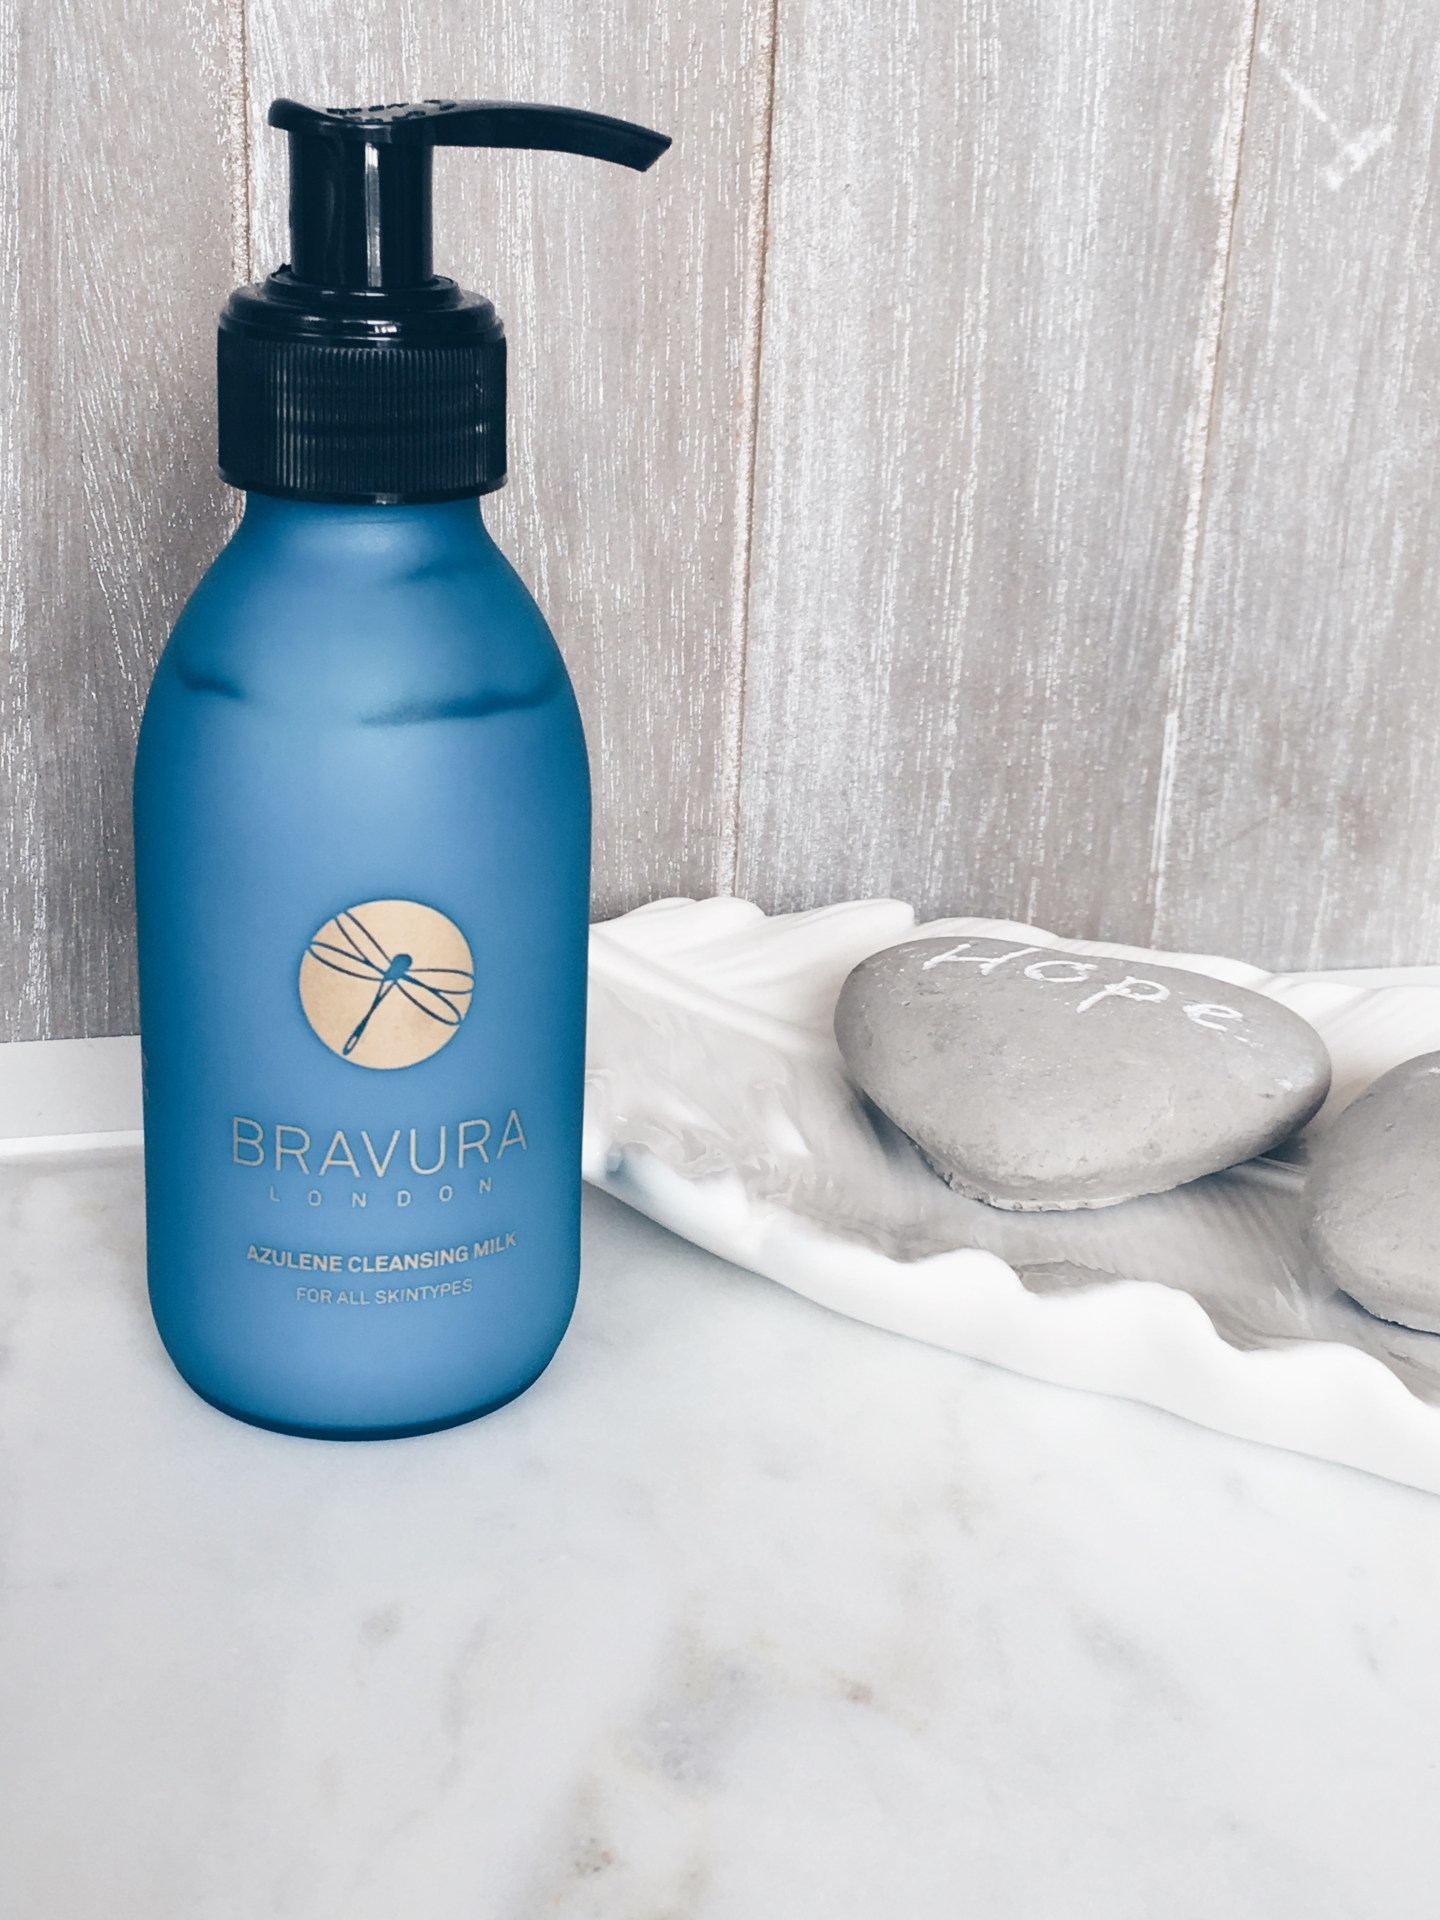 Bravura Azulene Cleansing Milk